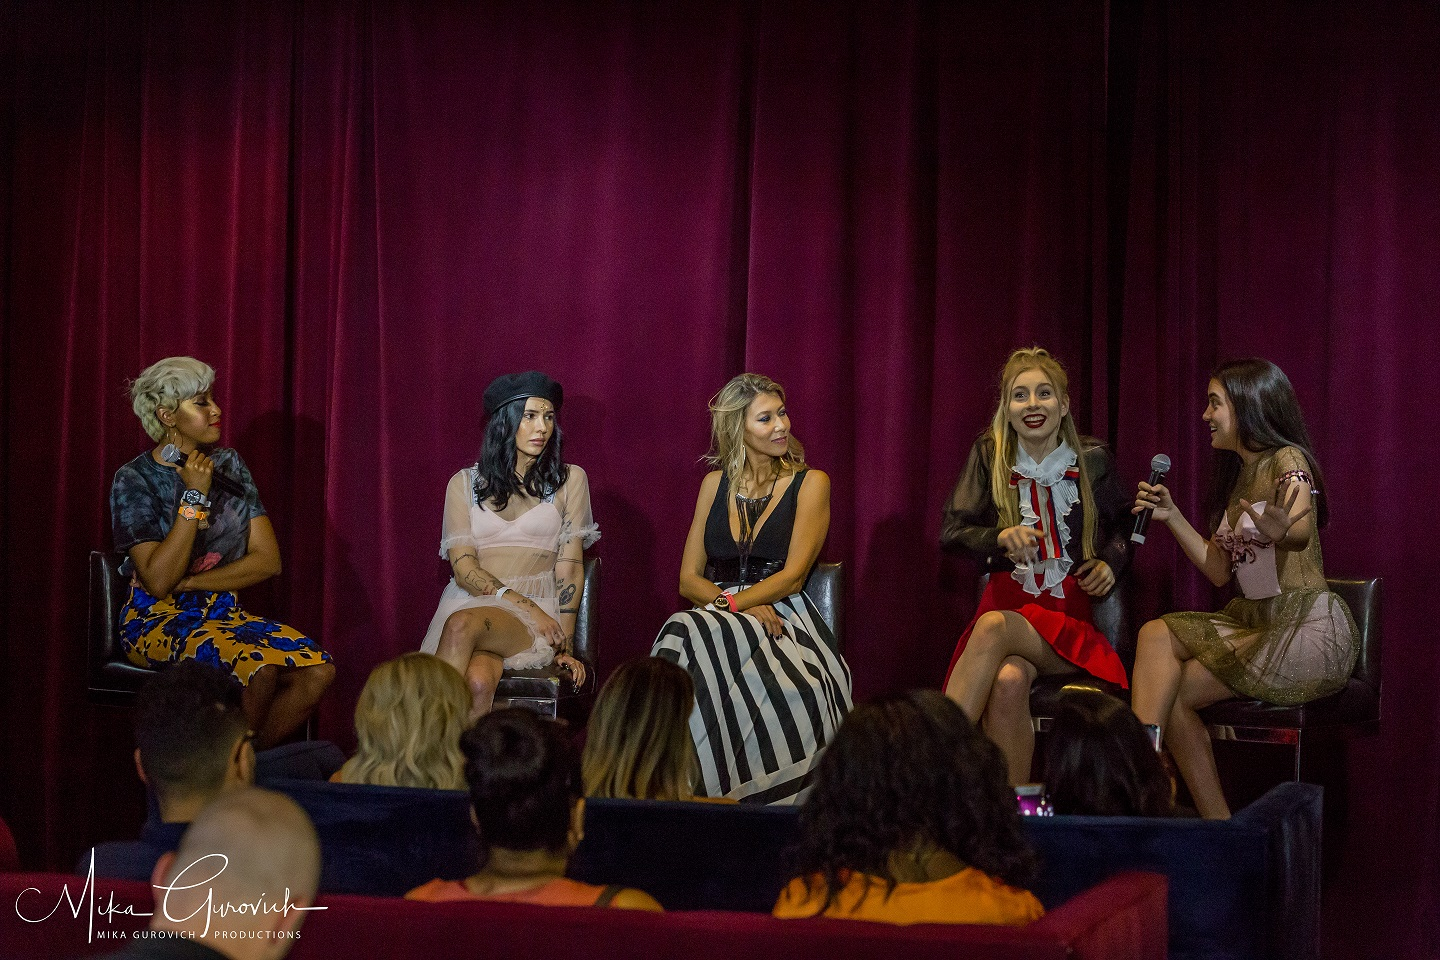 Great Q&A & Speakers at the LAFW Influencers Event צילום: מיקה גורביץ'